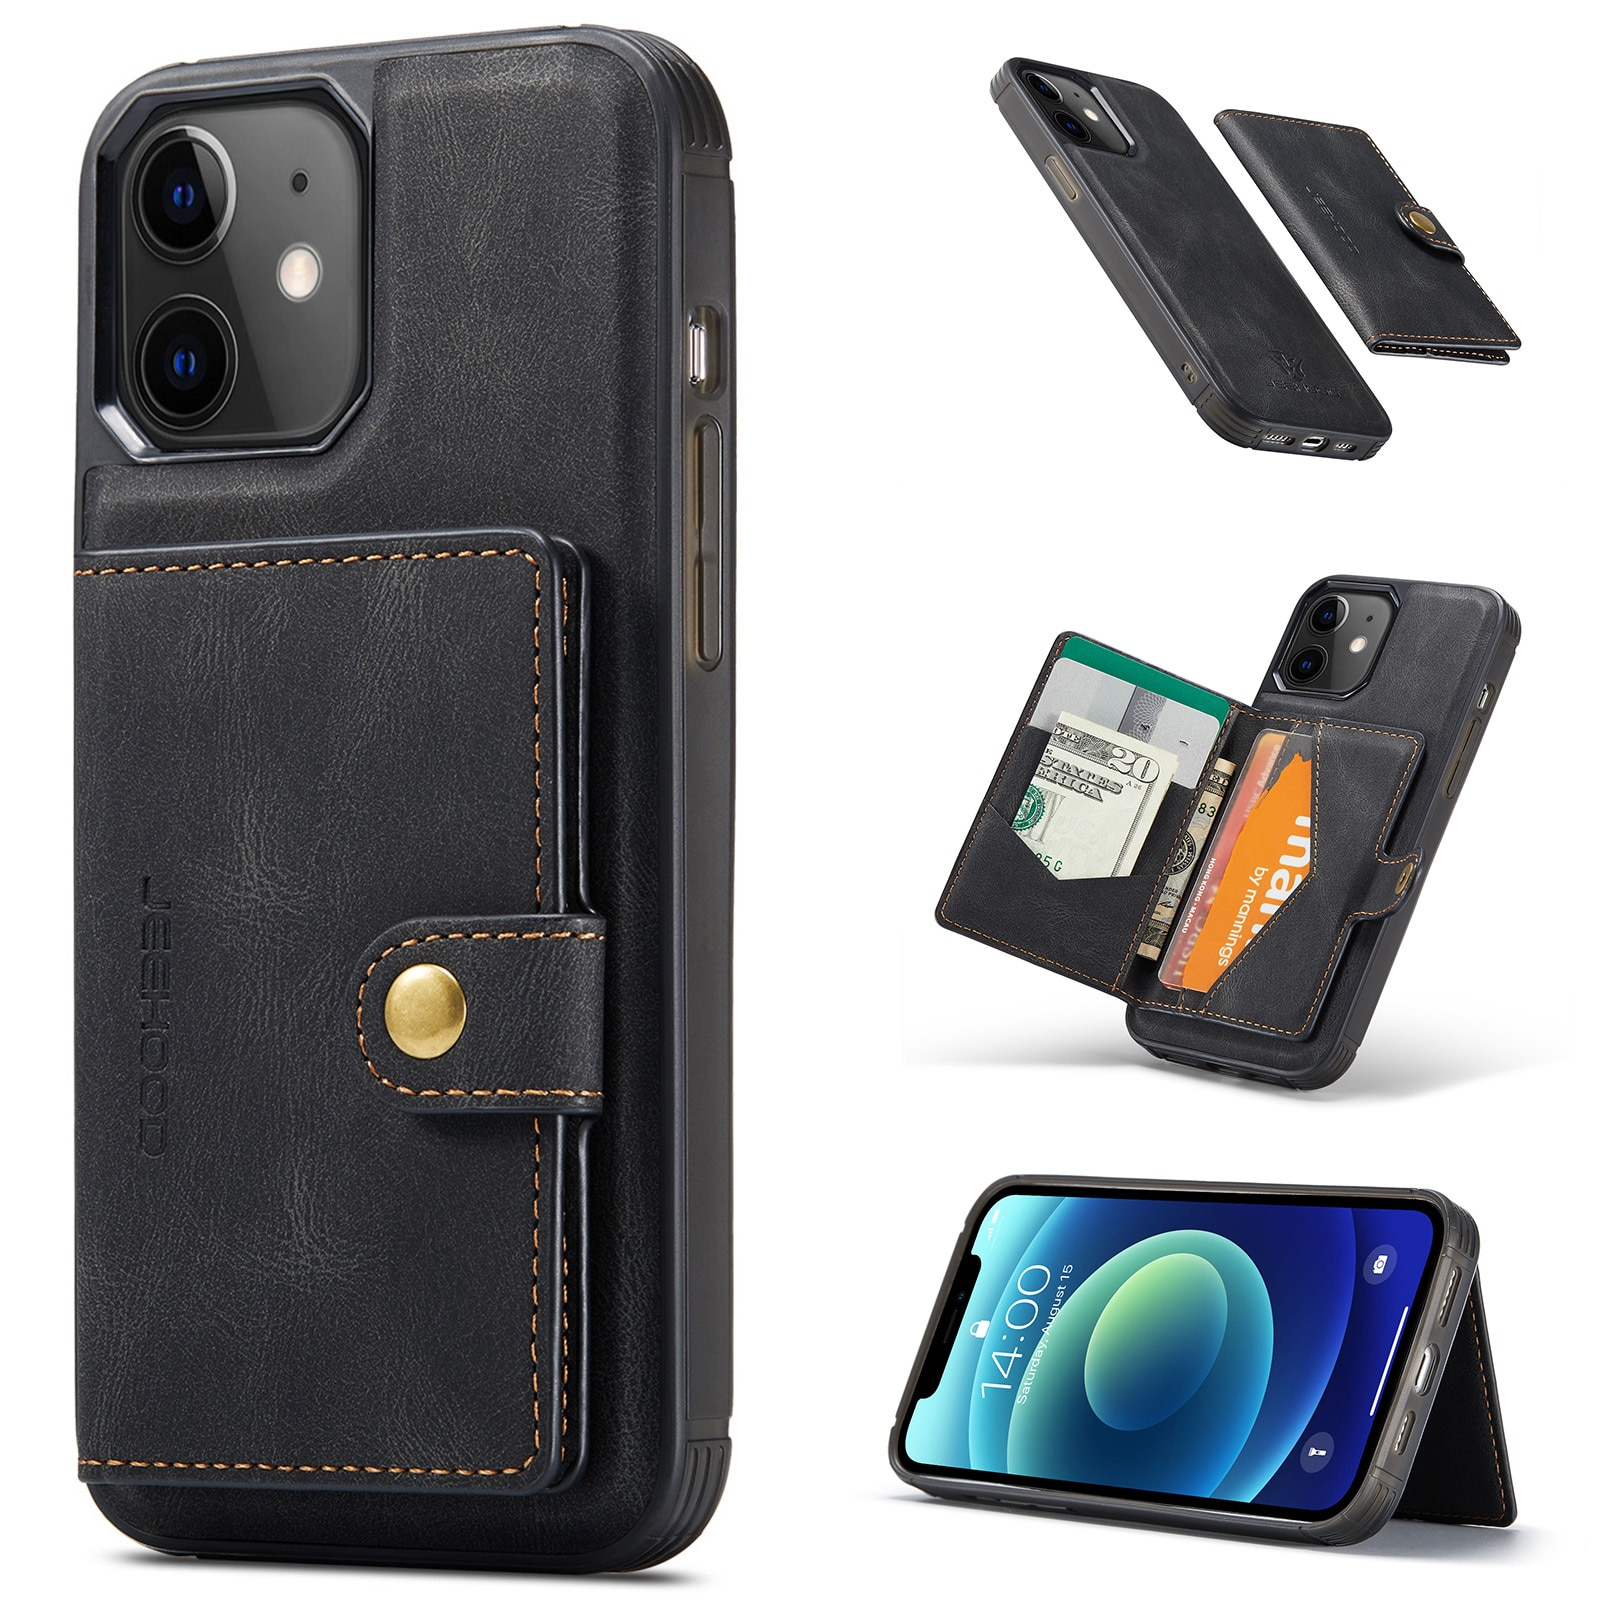 Magnetic Wallet Leather Phone Case For iPhone 12 Pro Max Card Holder Shockproof Cover For iPhone 11